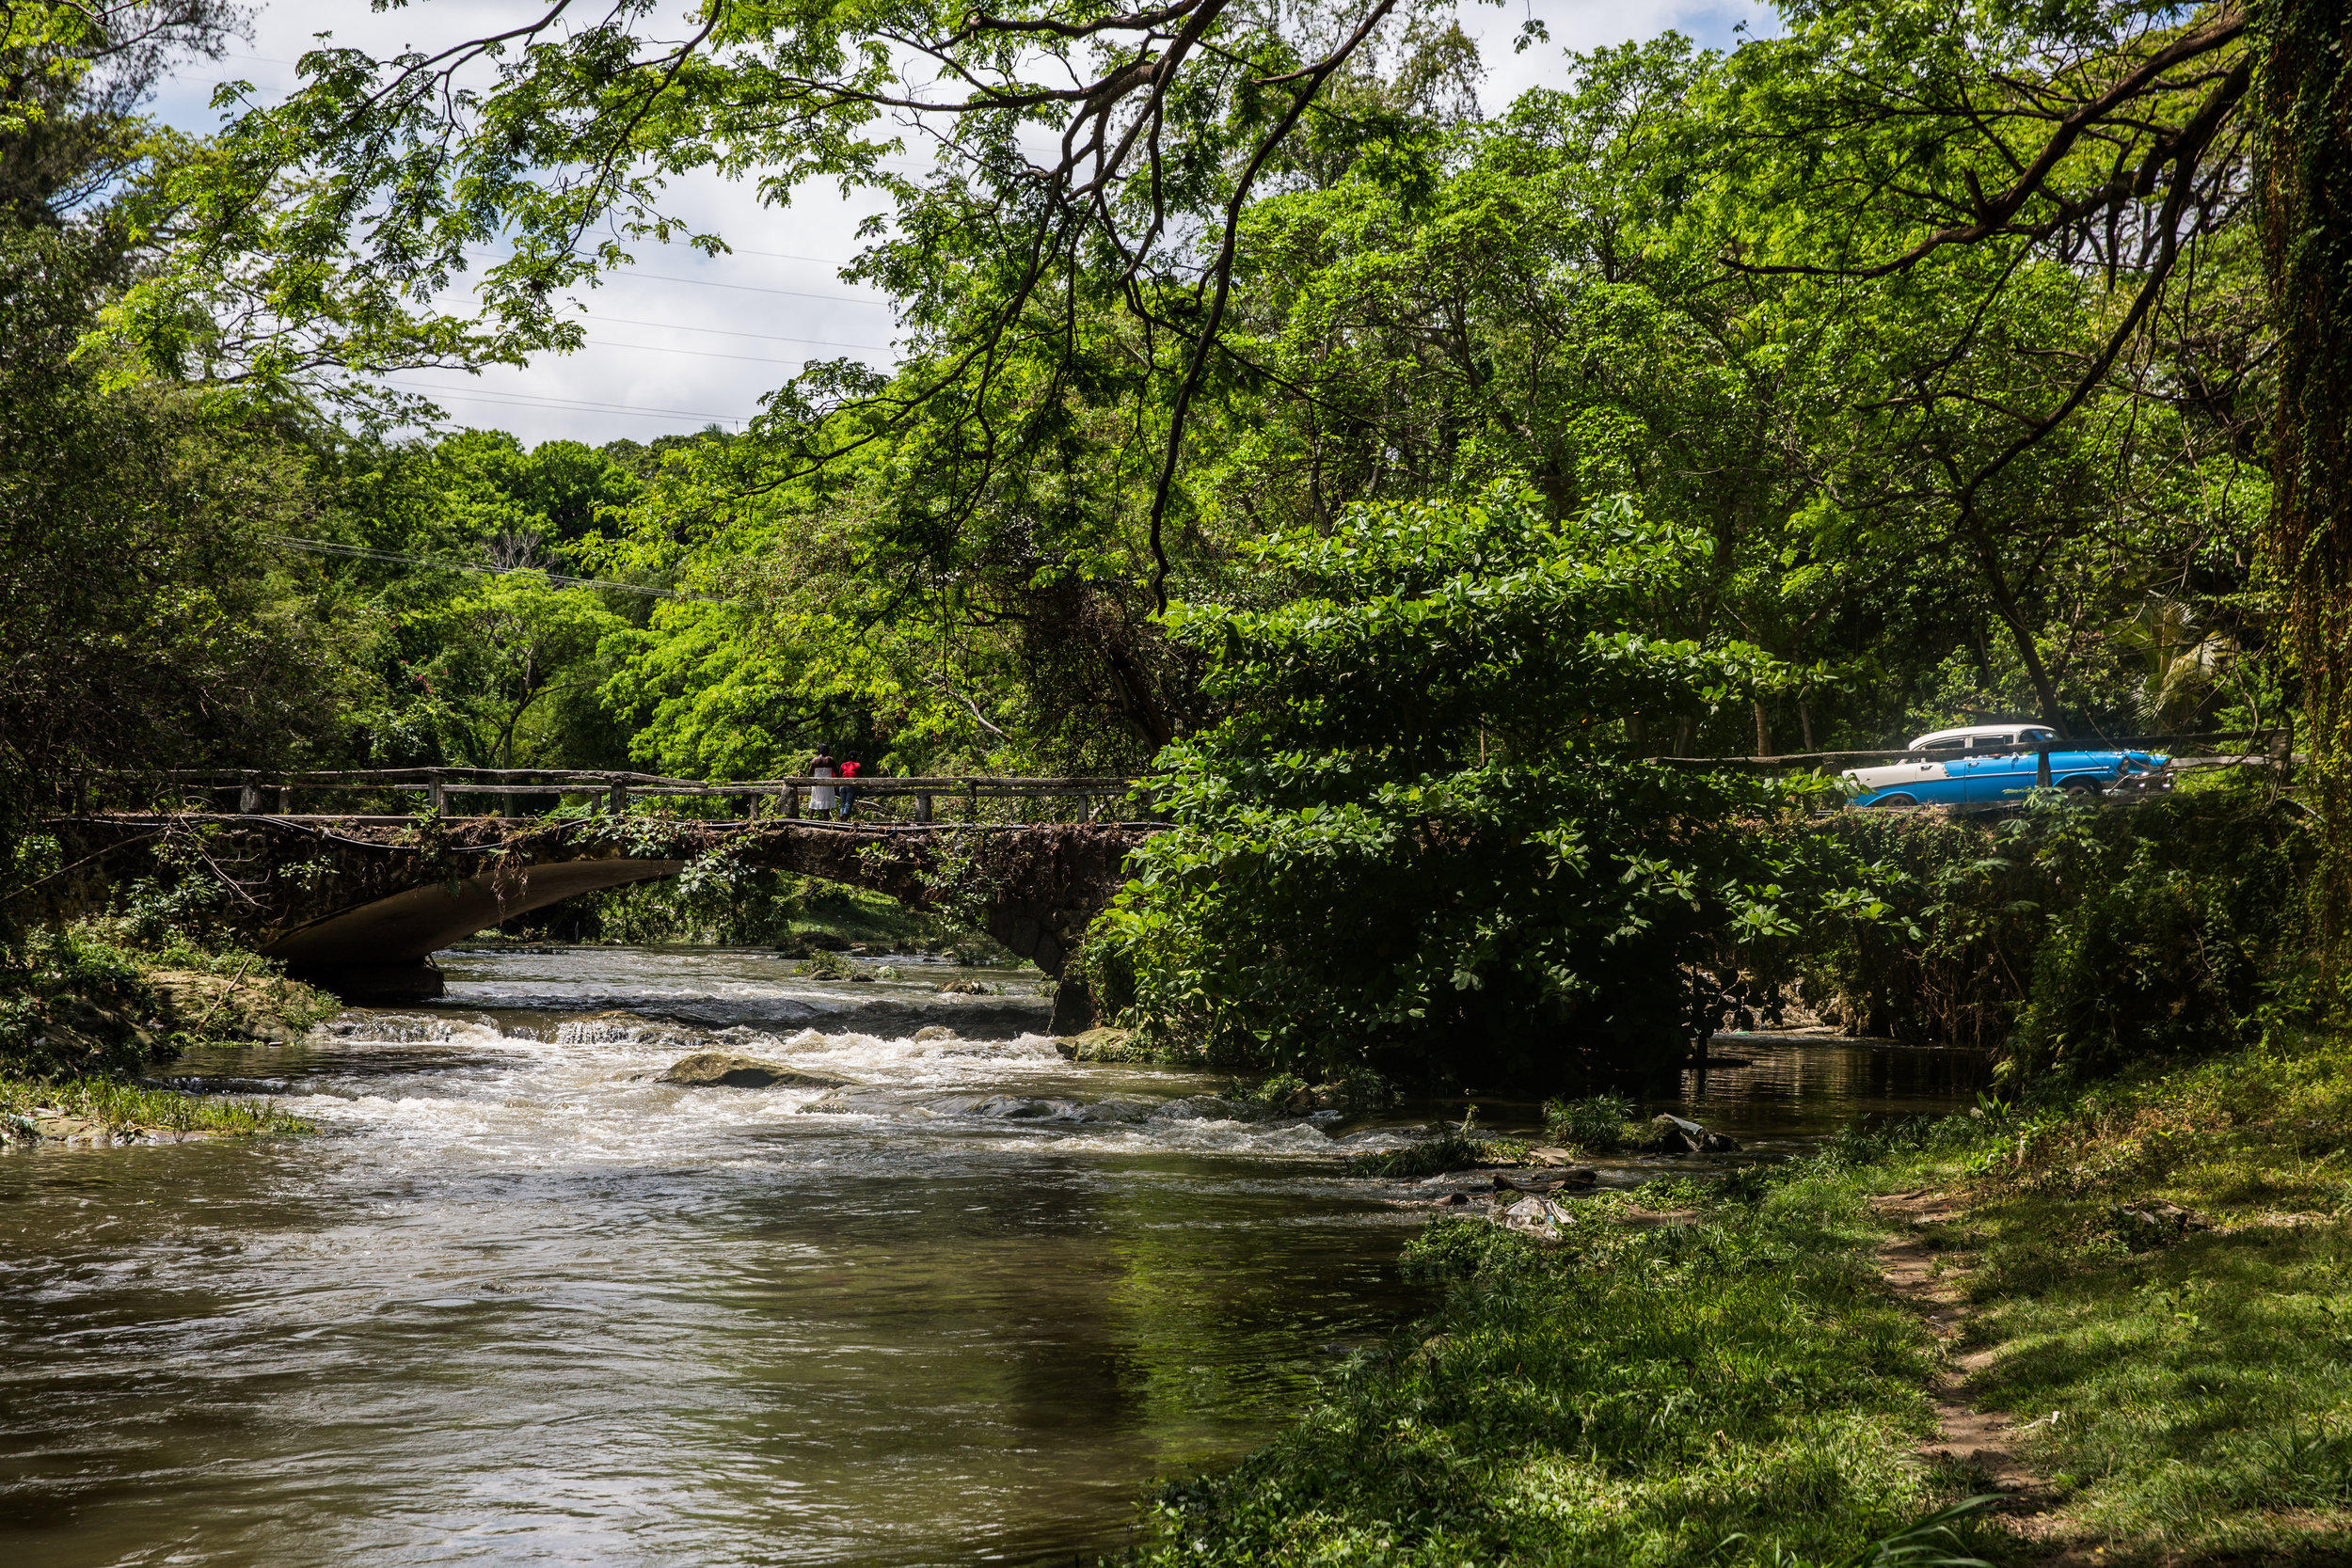 Jungles push up against Havana's city limits; a lush green nearly year round.